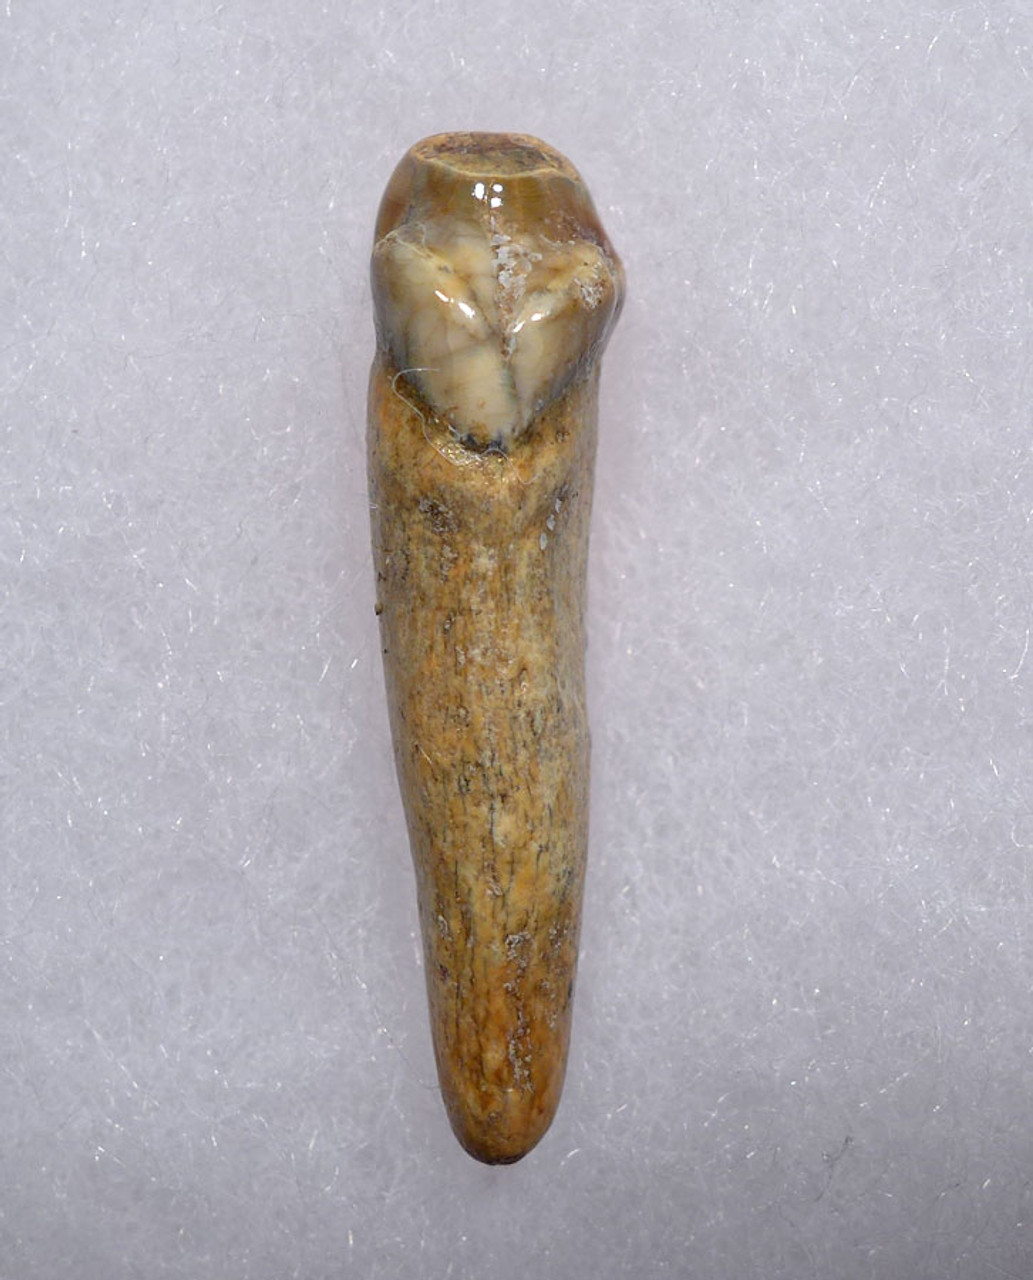 COLORFUL HIGH QUALITY CAVE BEAR FOSSIL TOOTH WITH ROOT FROM THE FAMOUS DRACHENHOHLE DRAGONS CAVE IN AUSTRIA *CB006